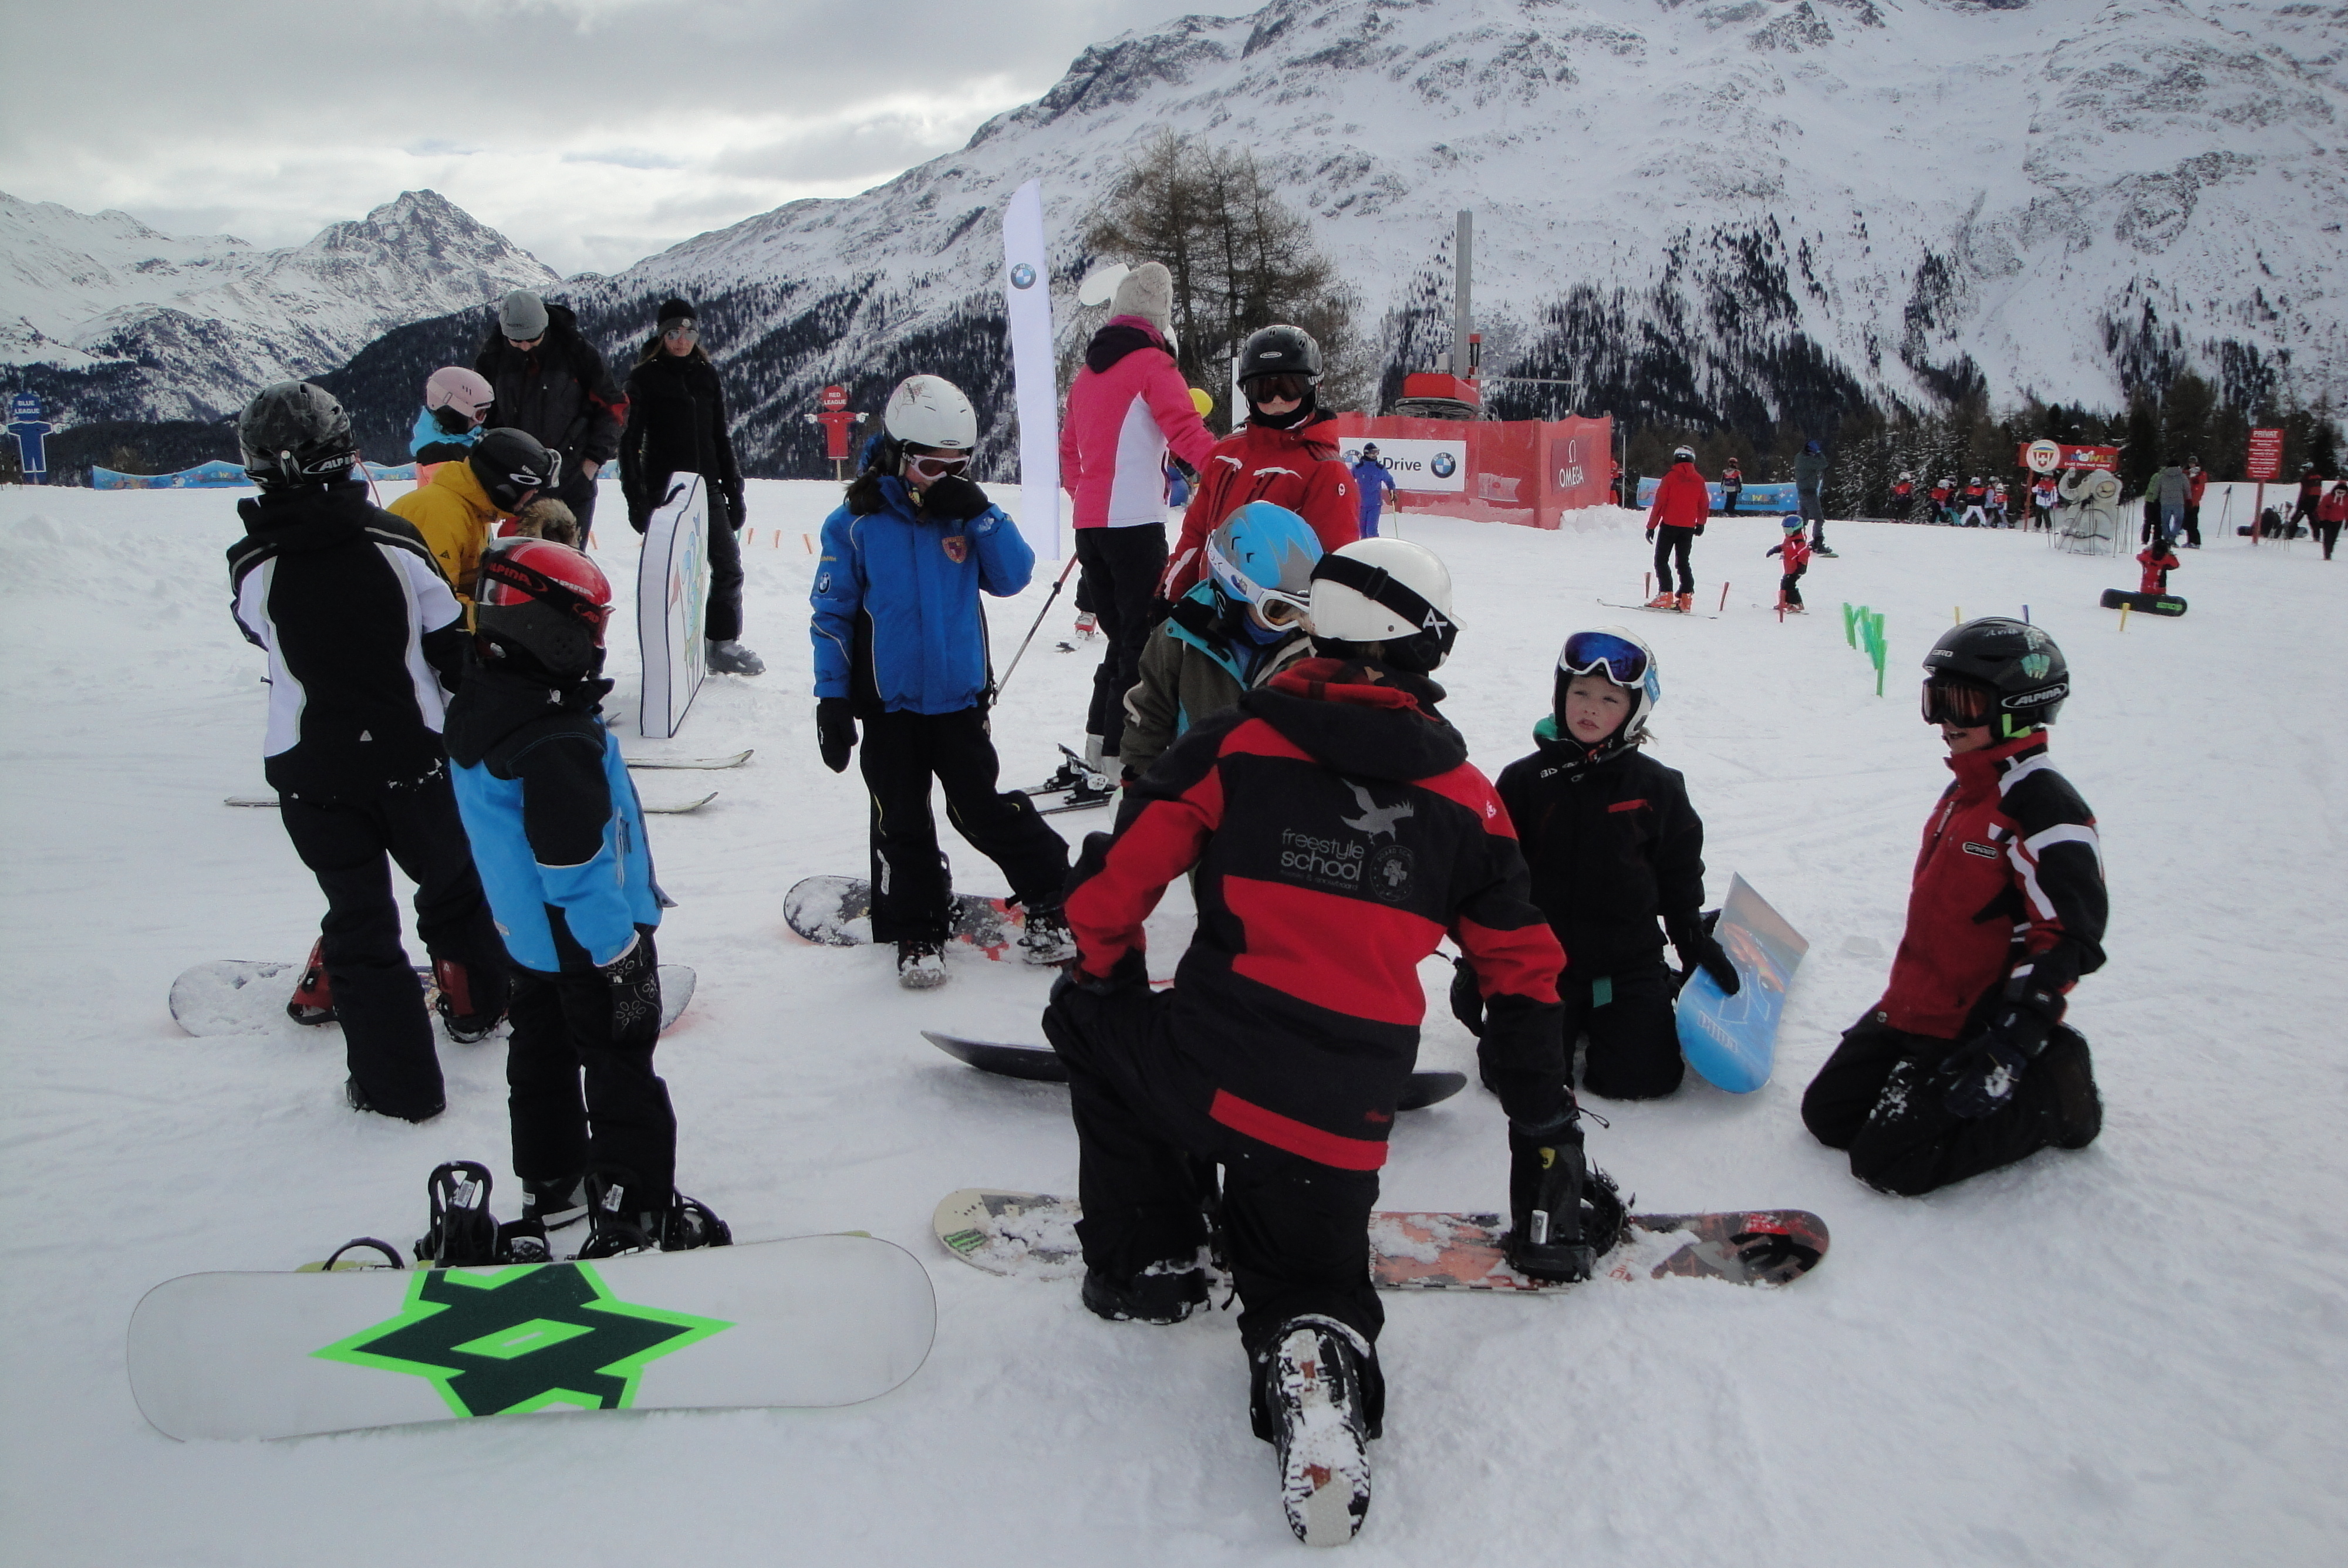 FIS World Snow Day in the Engadin